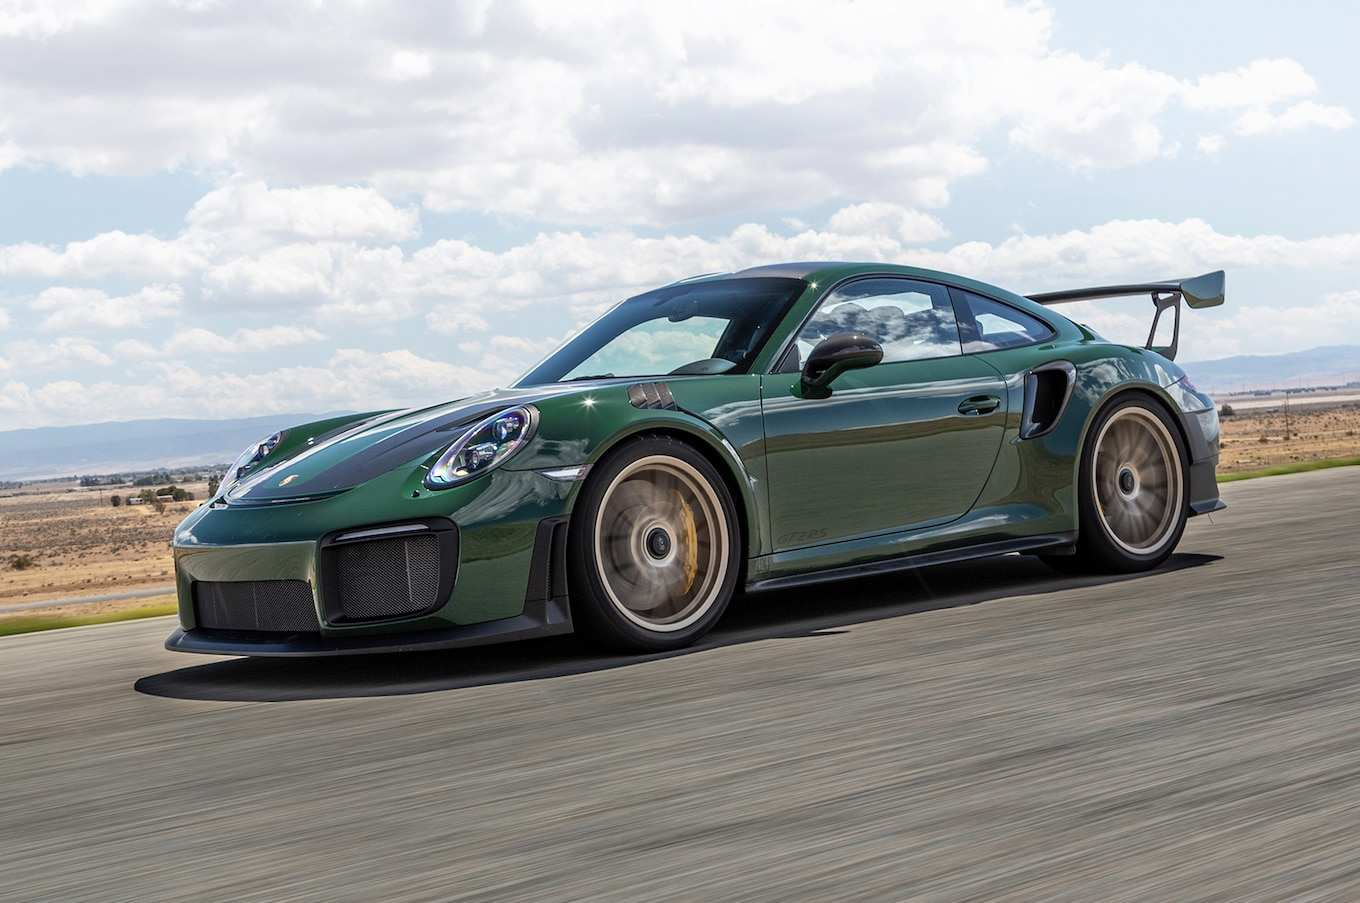 36 All New 2019 Porsche Gt2 Rs Exterior and Interior with 2019 Porsche Gt2 Rs